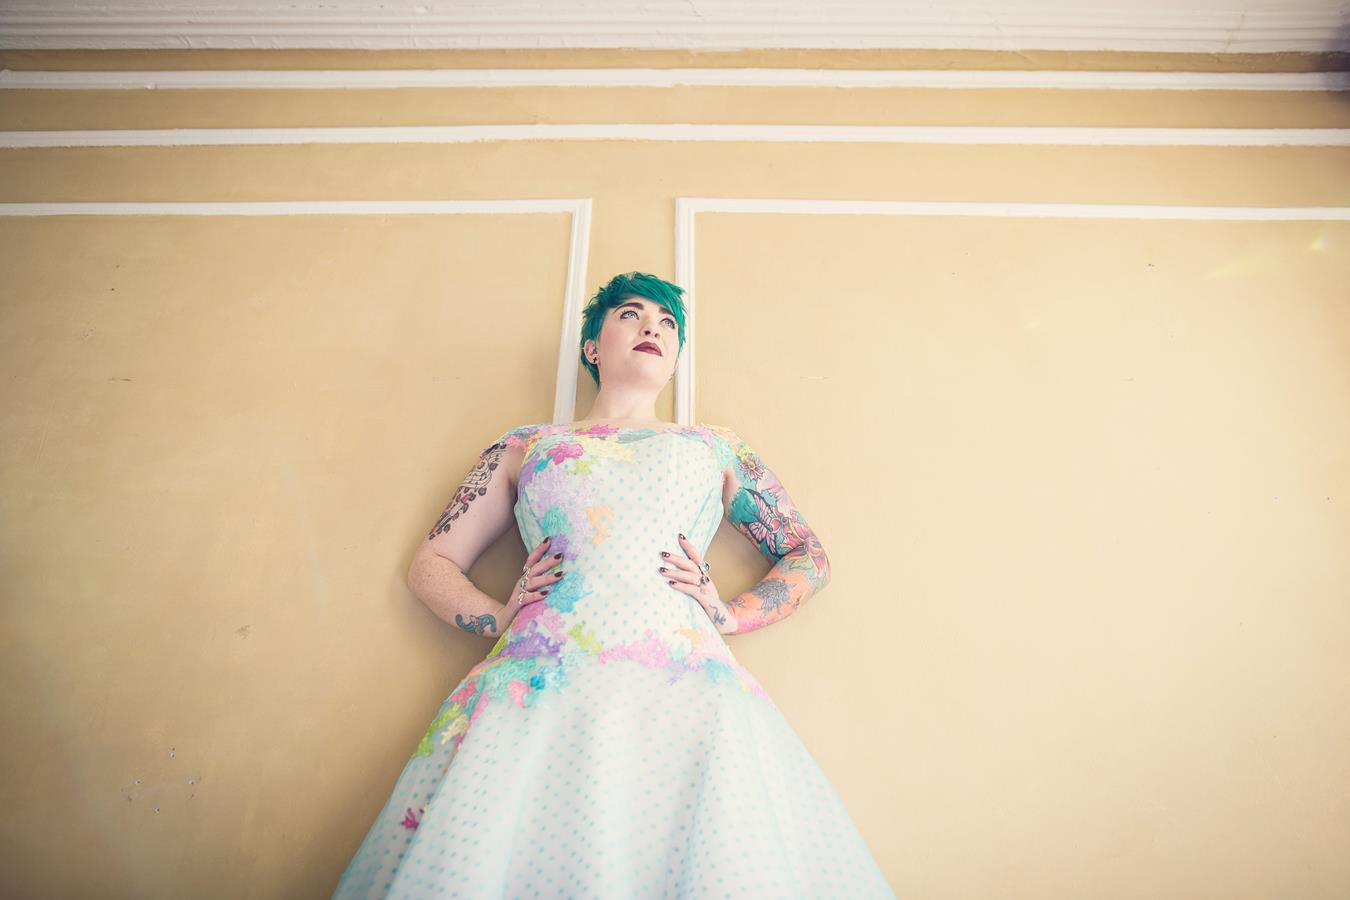 The-couture-company-alternative-bespoke-wedding-quirky-dresses-1950s-swing-vintage-lace-embroidered-lace-dress-bride-teal-blue-pink-polkadot-assassynation (86)